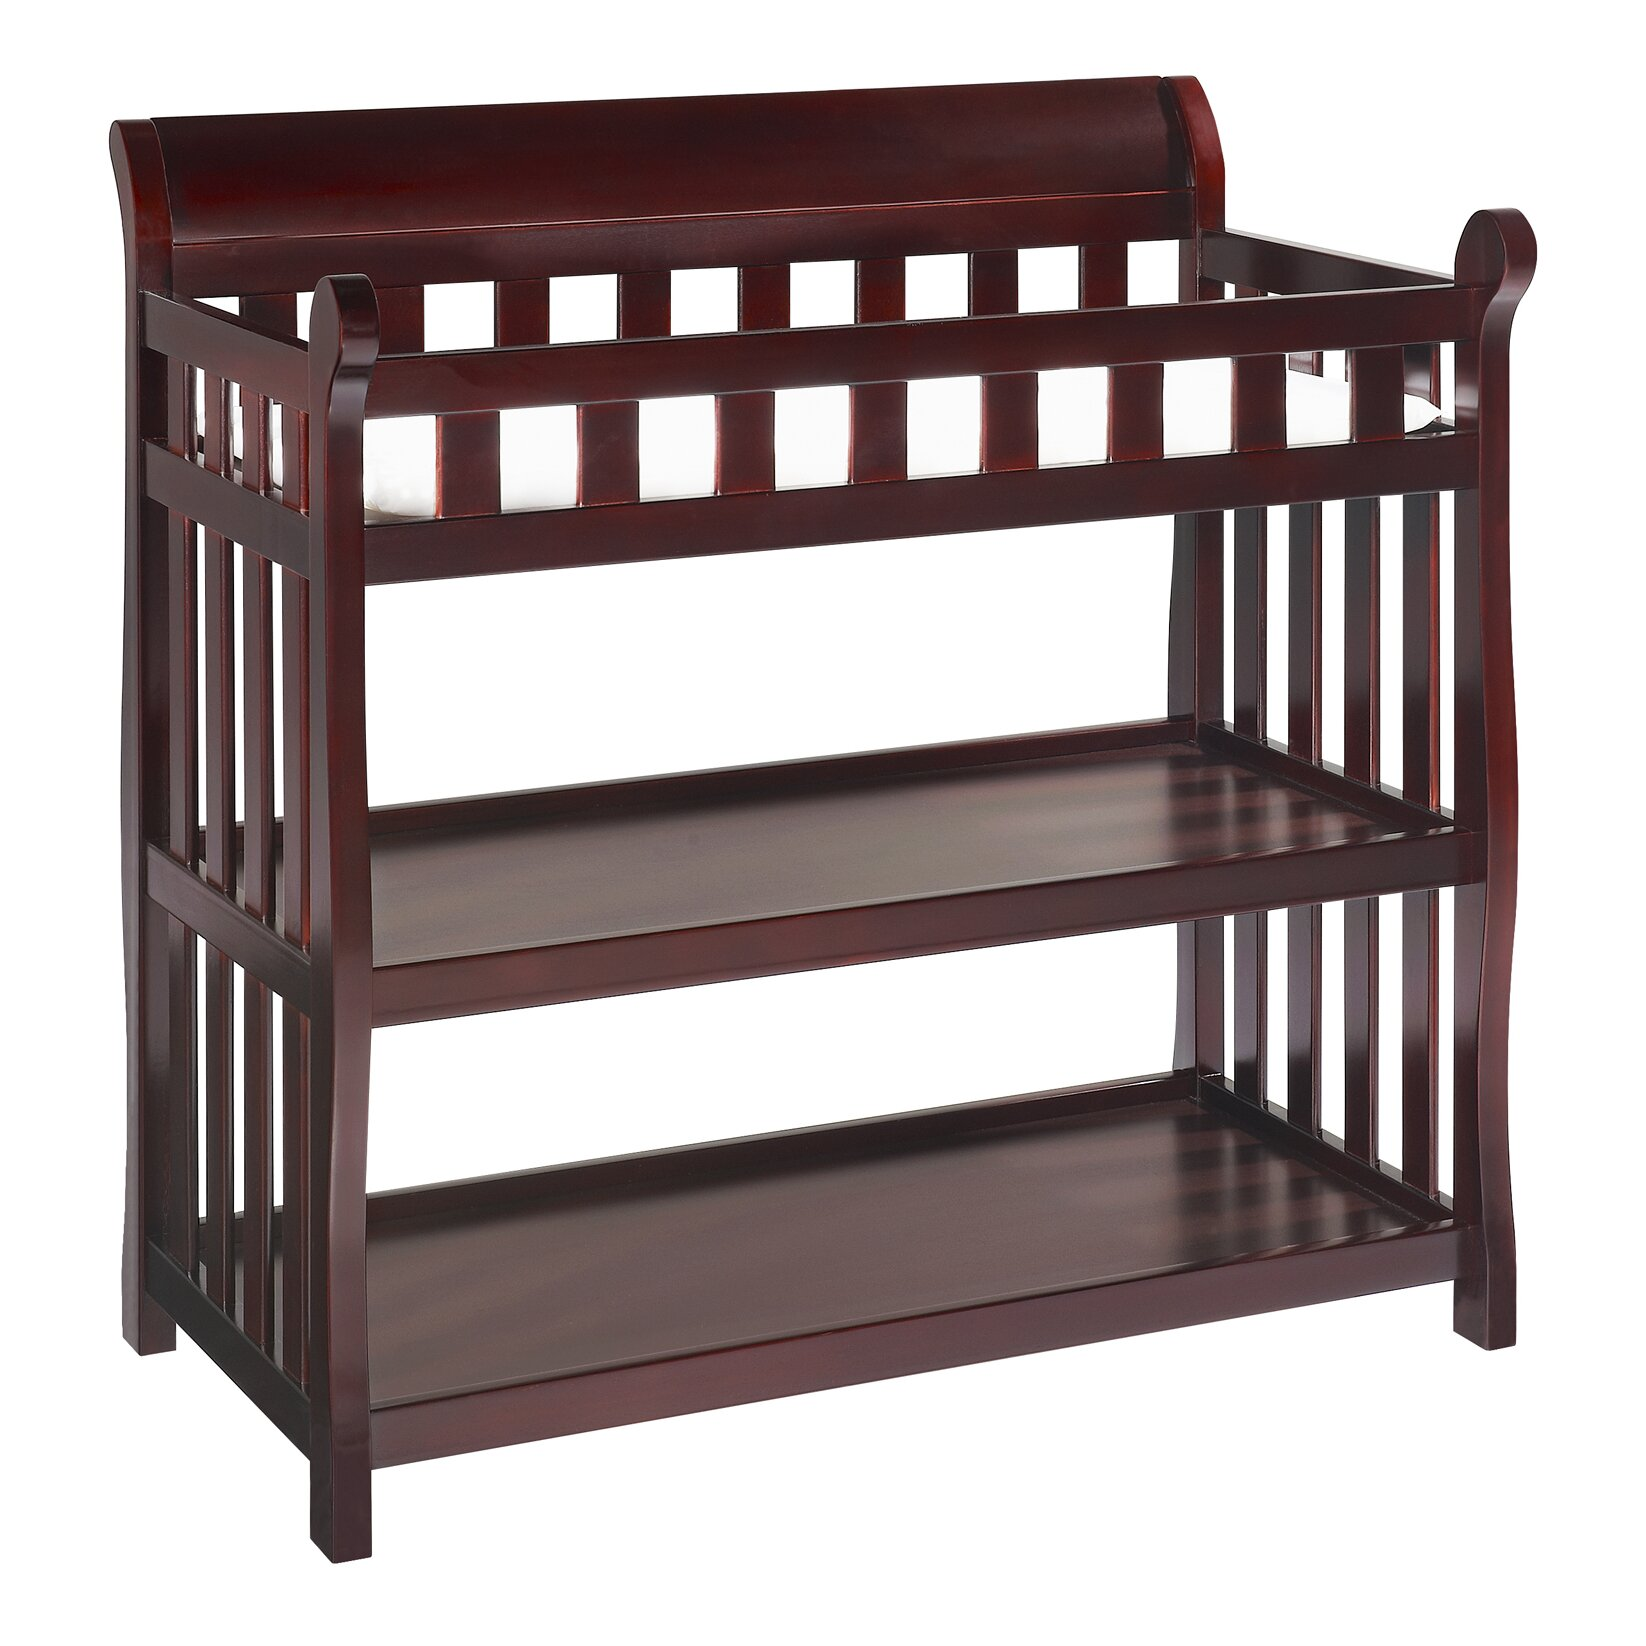 Delta Children Eclipse Changing Table amp Reviews Wayfair : Delta Children Eclipse Changing Table 7586 from www.wayfair.com size 1646 x 1646 jpeg 316kB